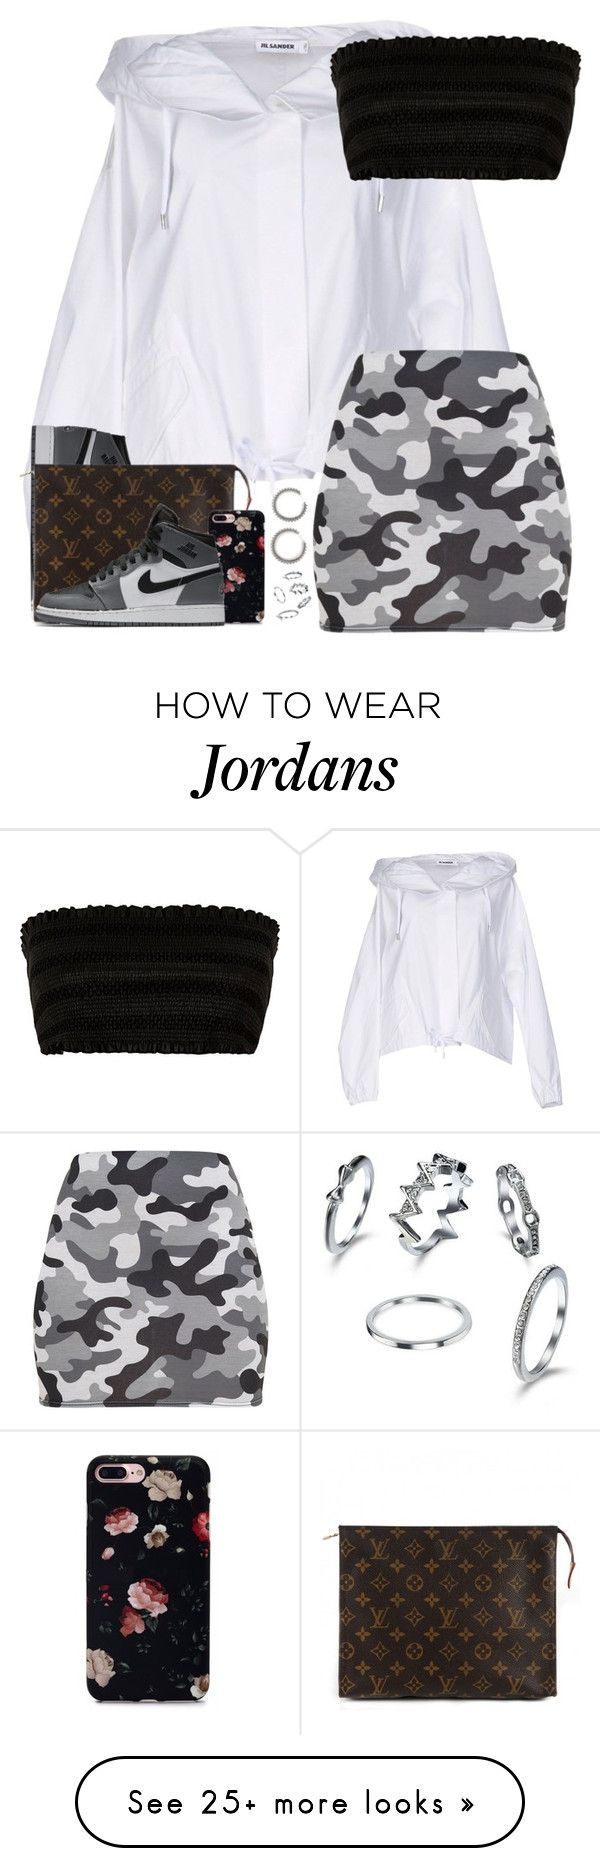 """☠️they say crack kills, n*gga my crack sells☠️"" by imlowkeydaddy on Polyvore featuring Jil Sander, NIKE and Louis Vuitton"